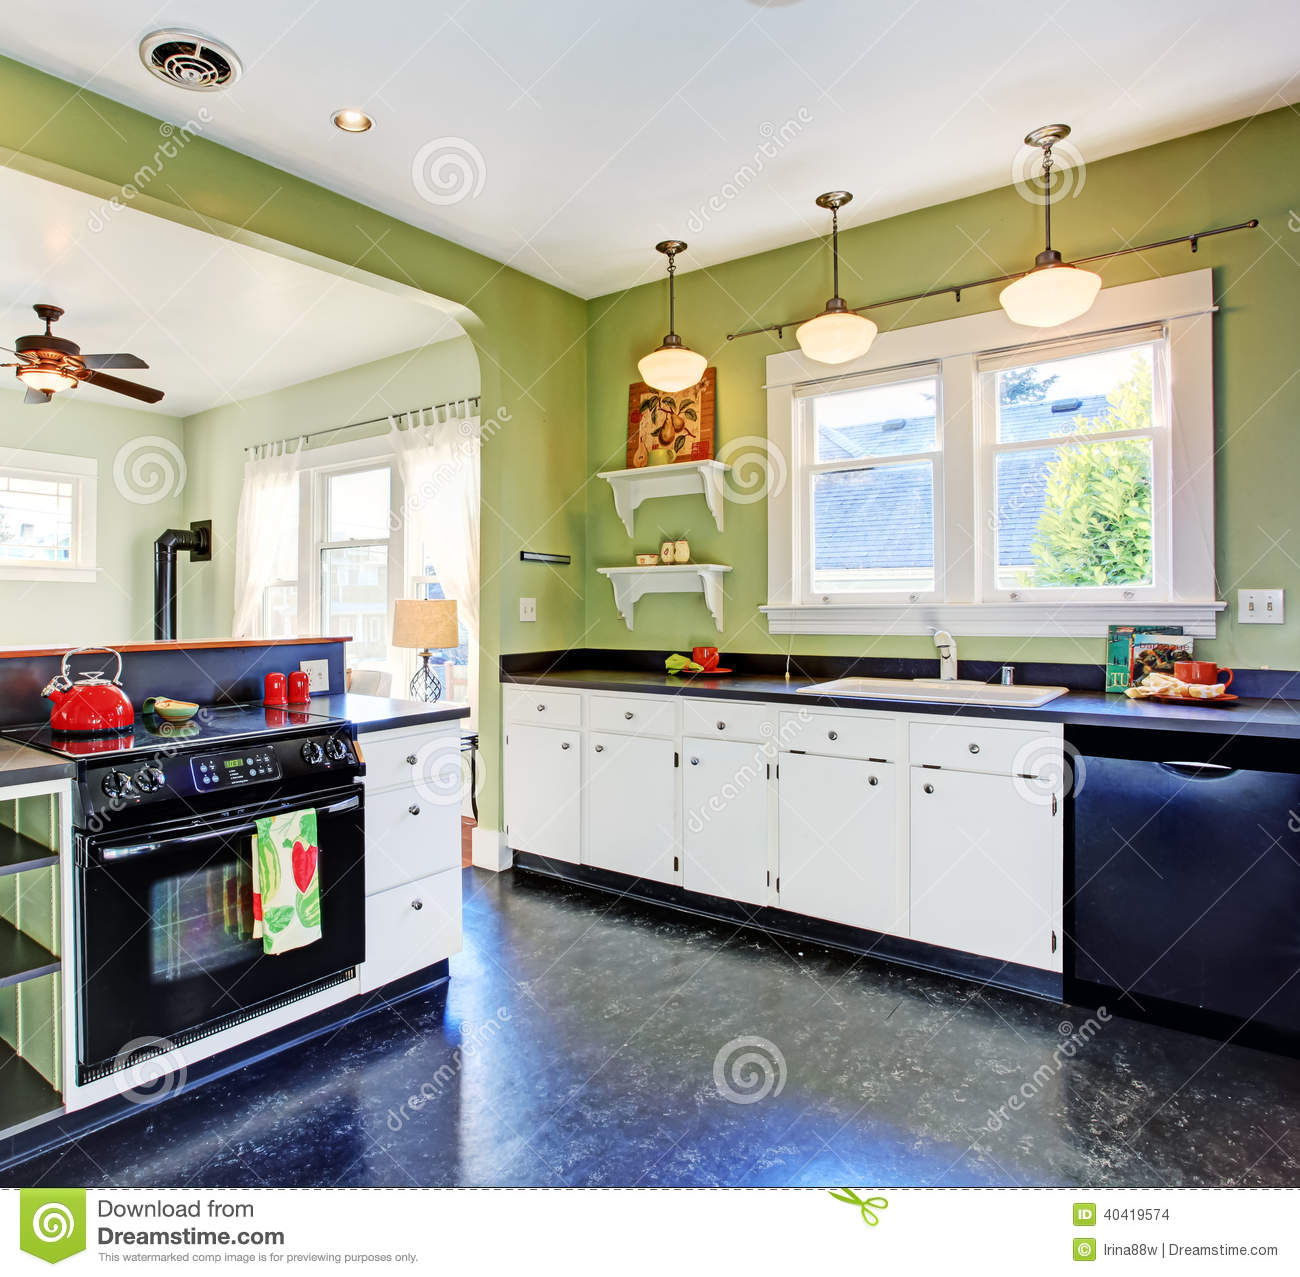 Black Kitchen Appliances With White Cabinets: Kitchen Room Interior Stock Photo